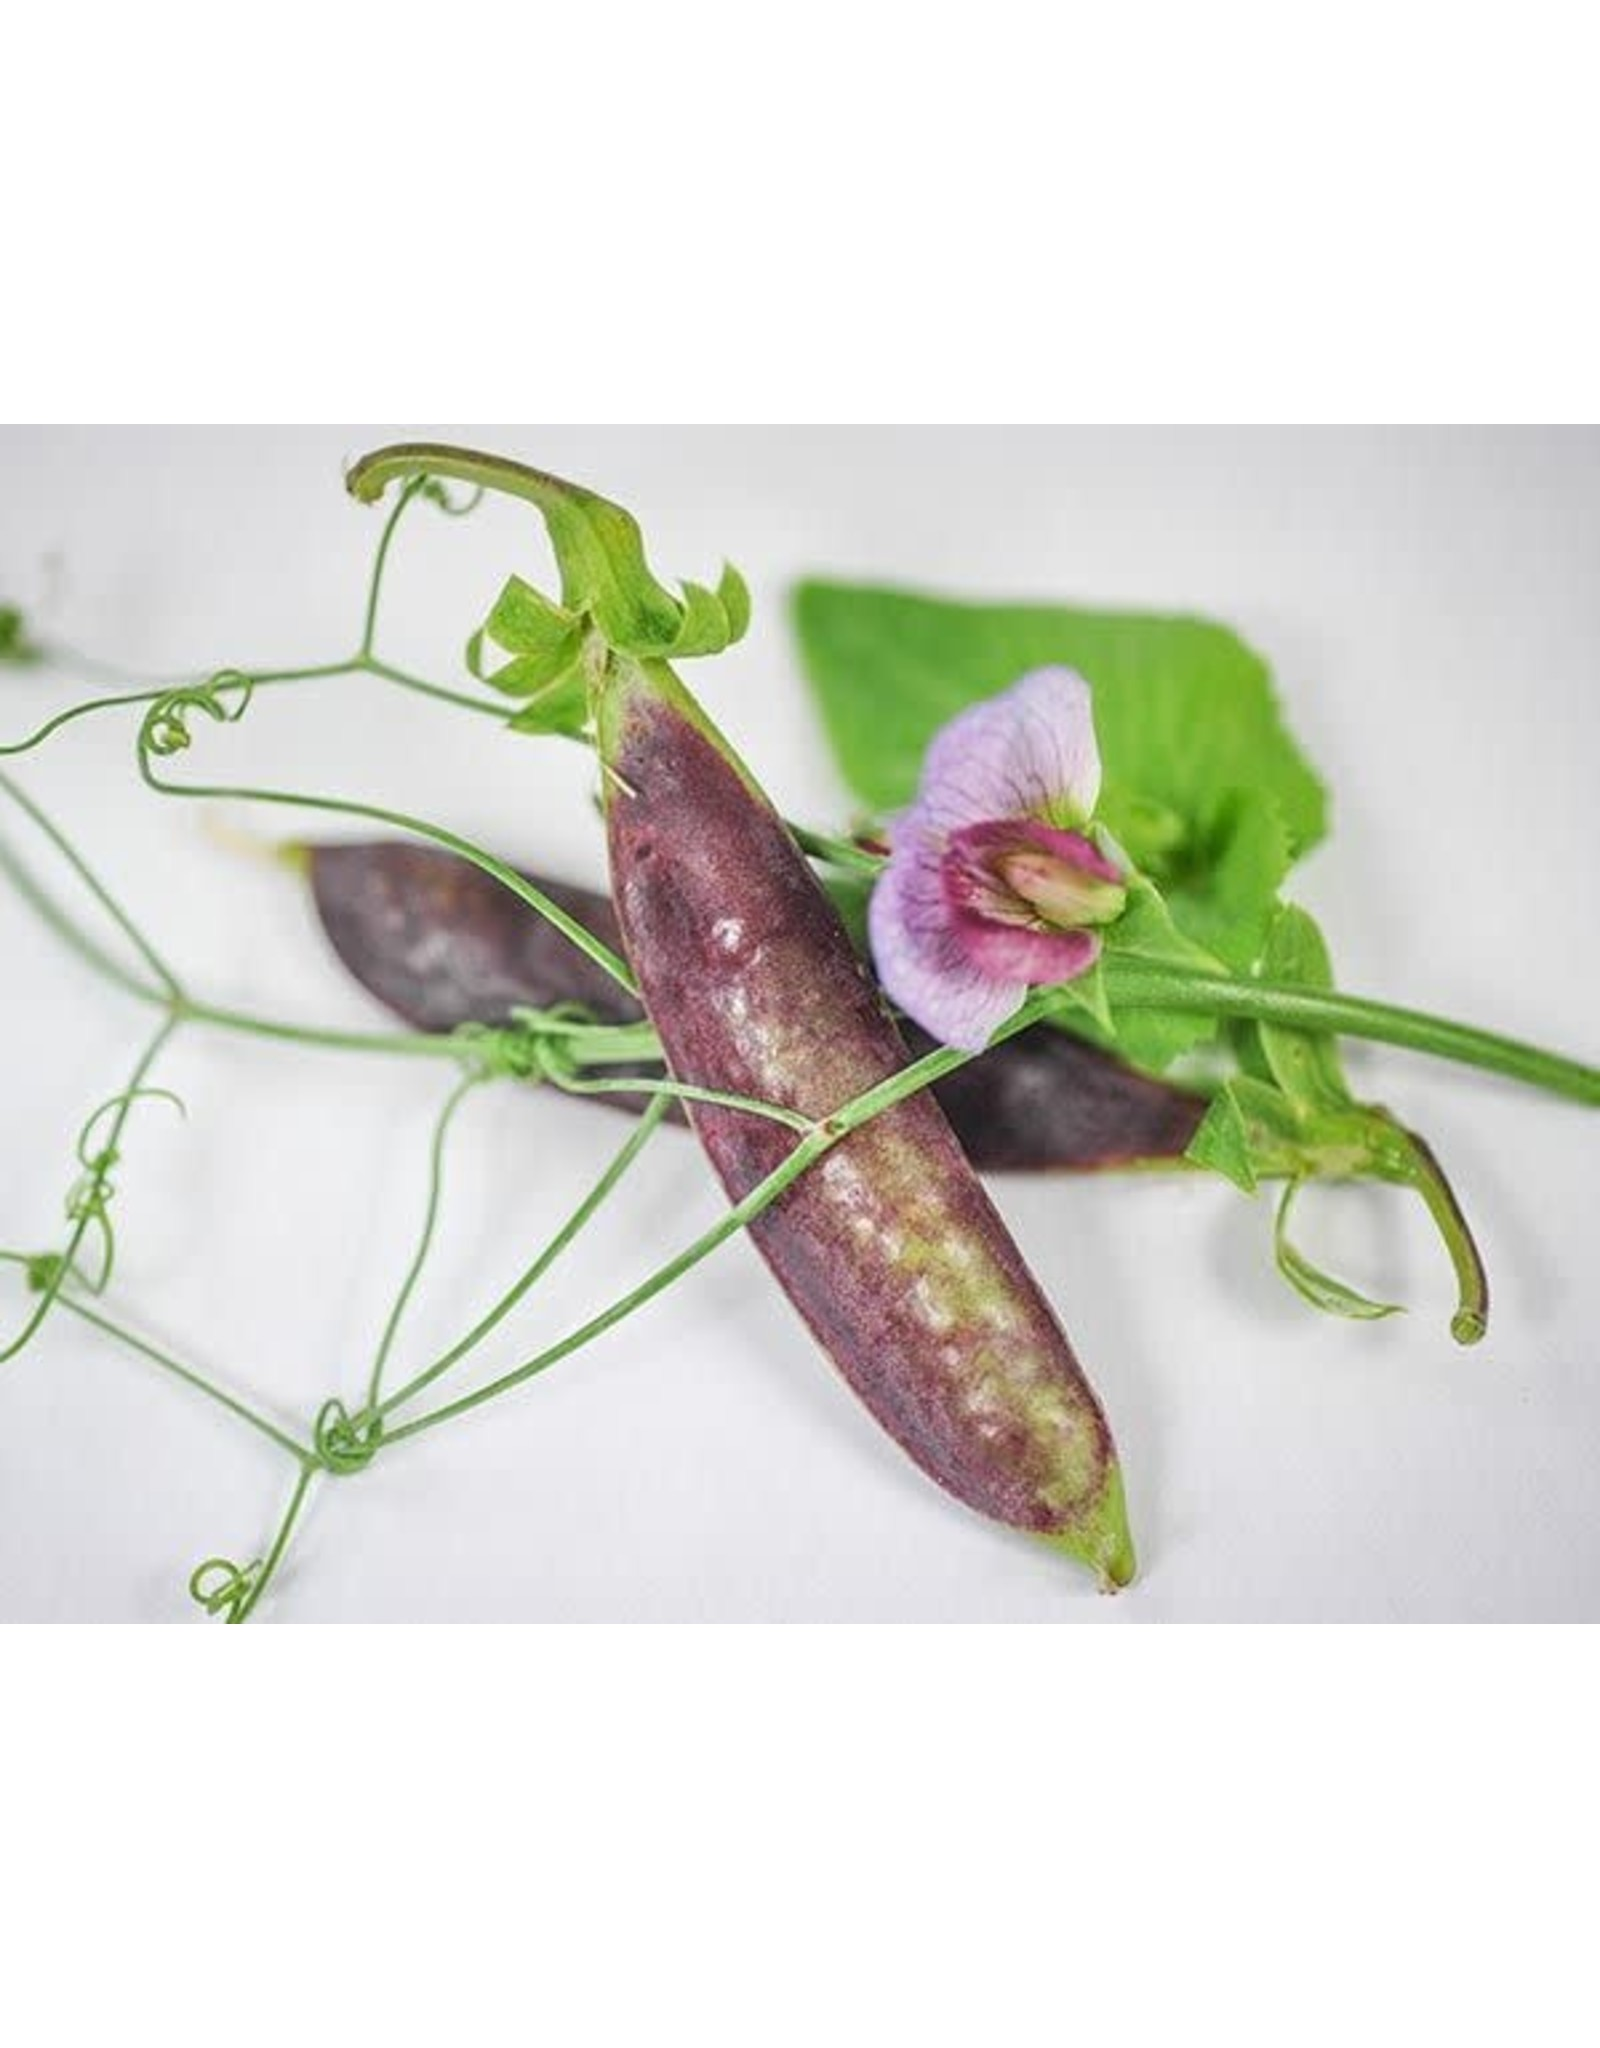 Seeds - Pea Snap Purple Sugar Magnolia